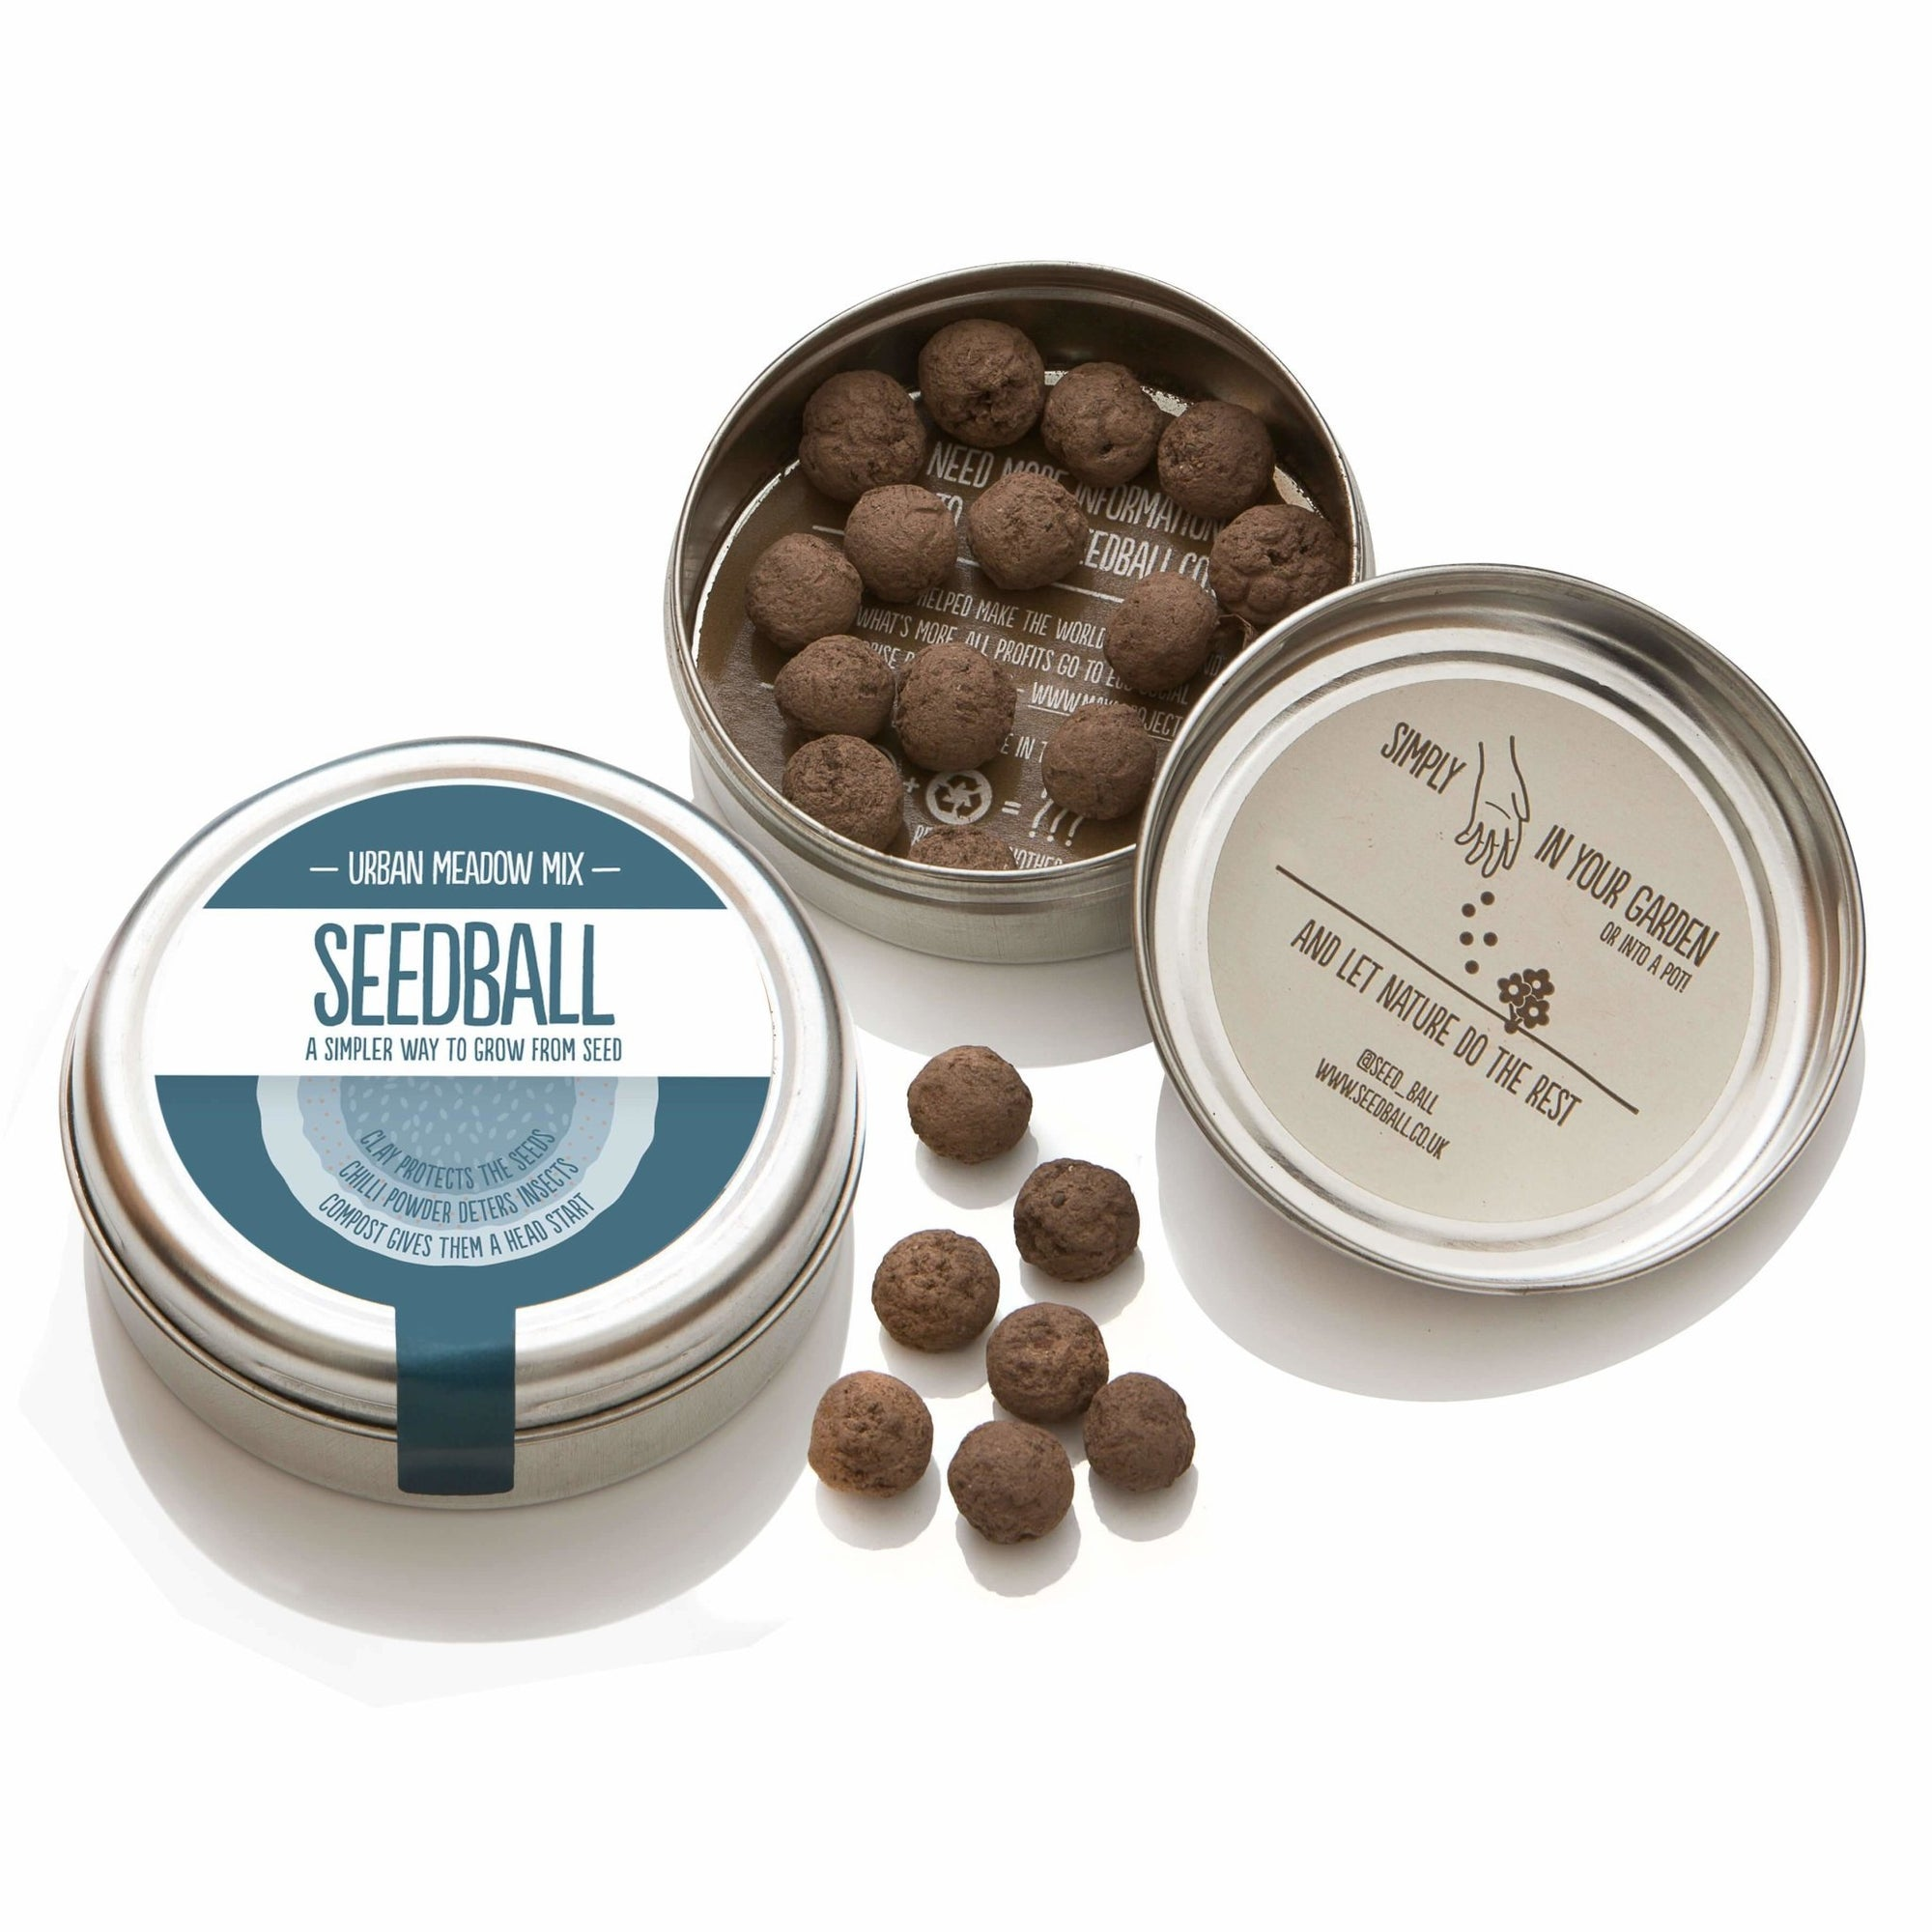 Seedball | Urban Meadow Mix Seedball Gift | BoxTree | Send a Gift